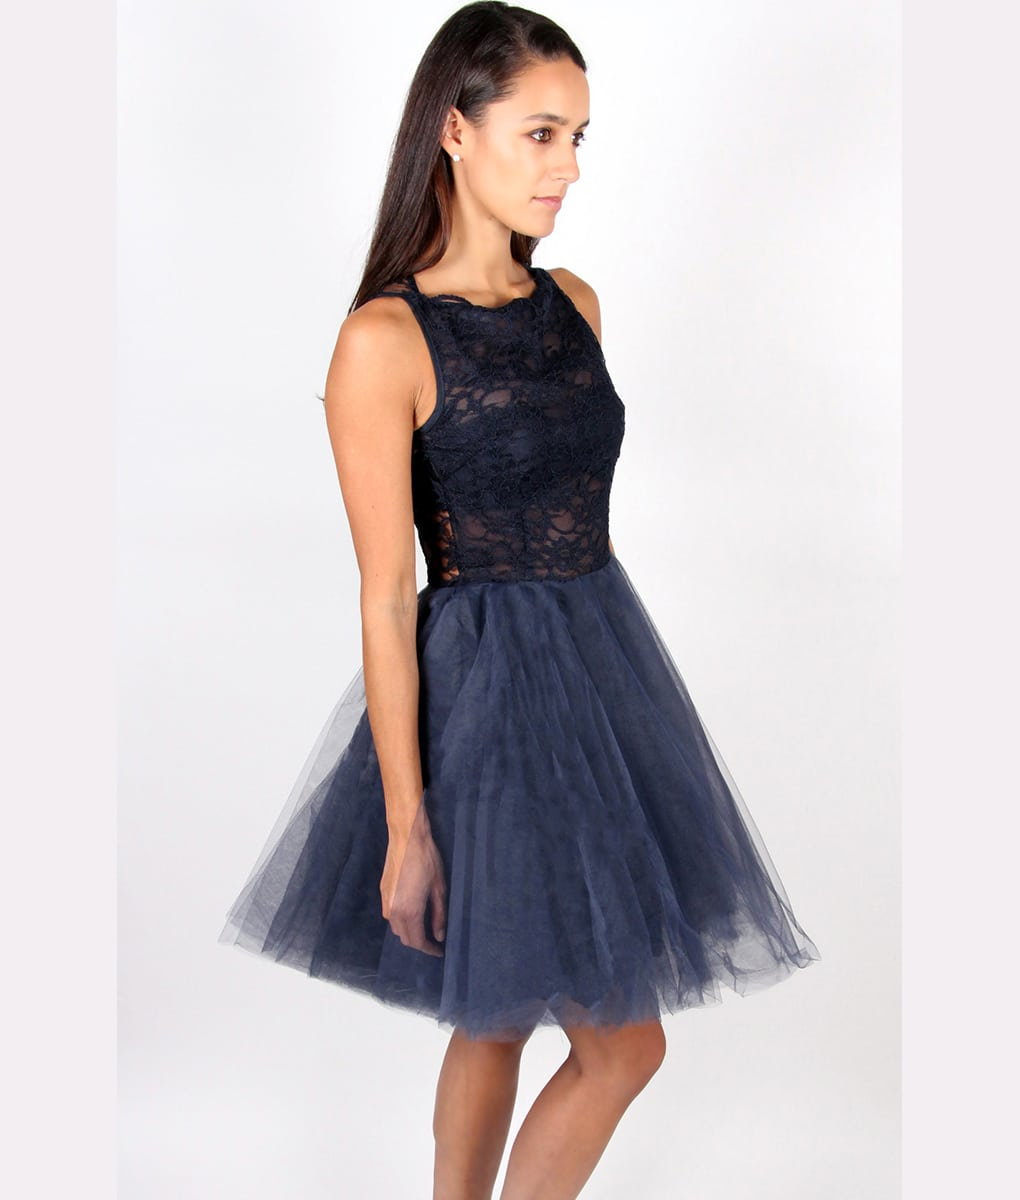 Alila Navy Tutu Dress by Jones & Jones